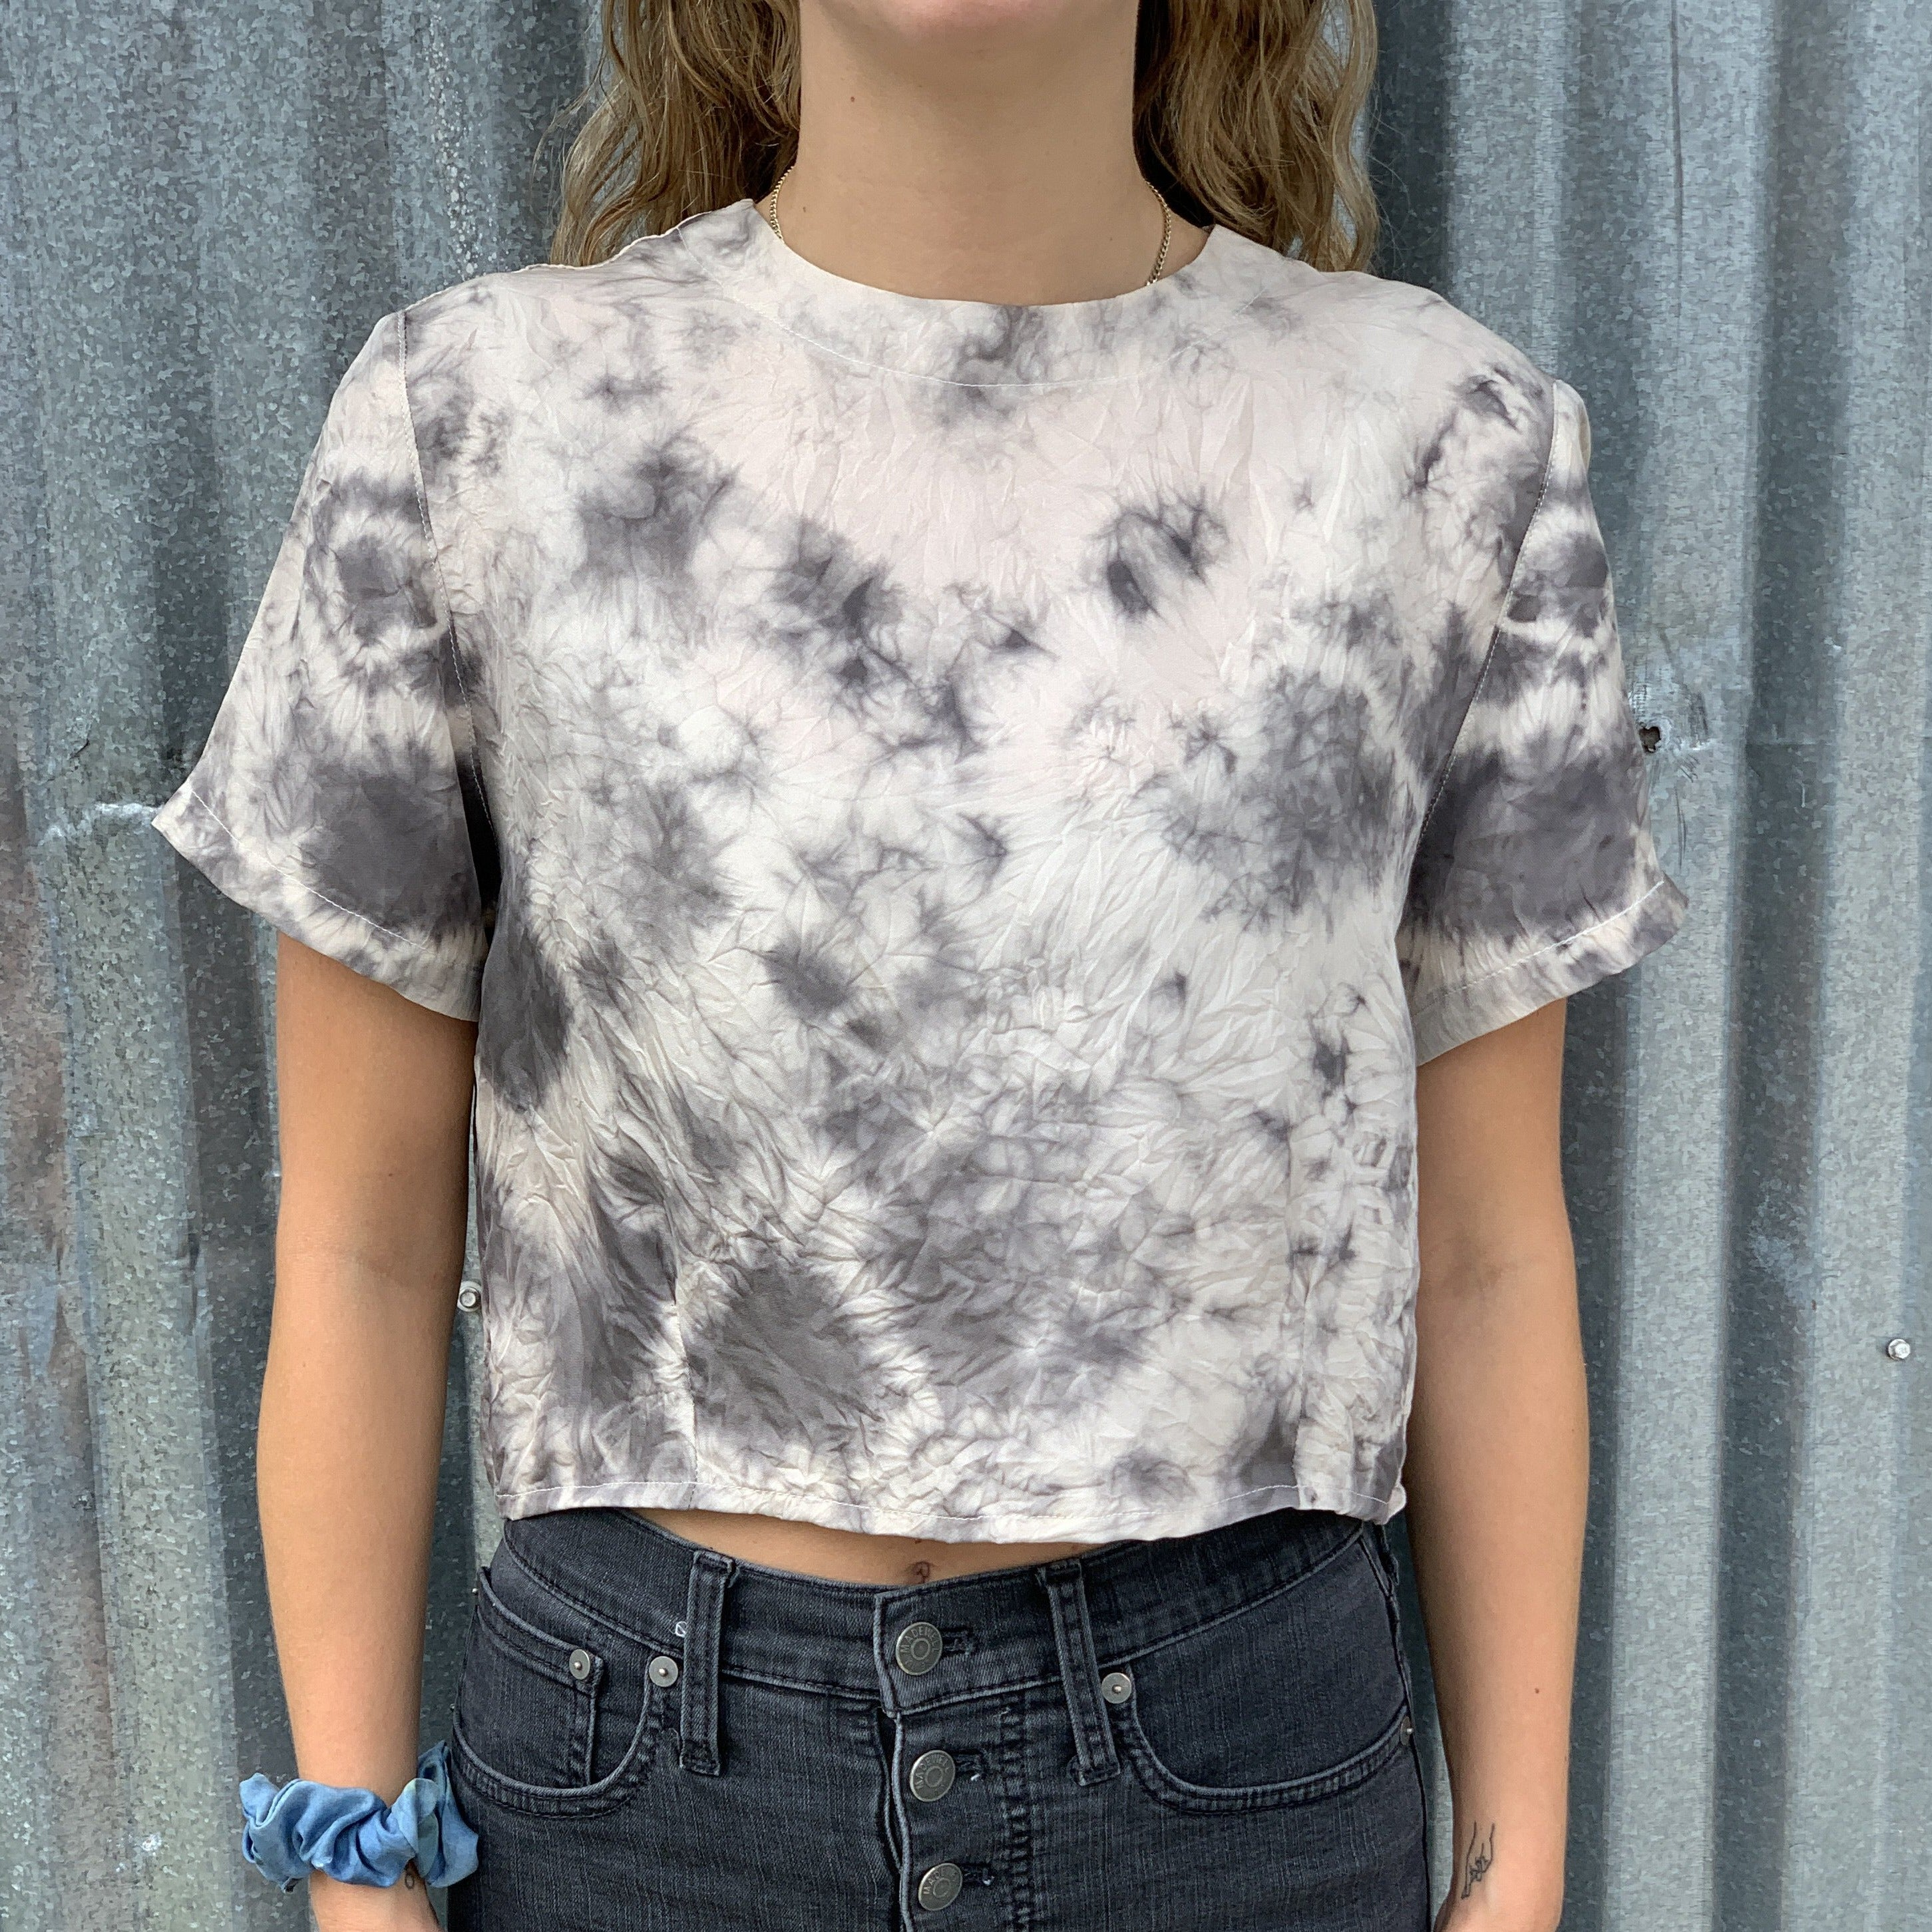 The Boxy Crop Top: Yin/Yang (Made to Order)